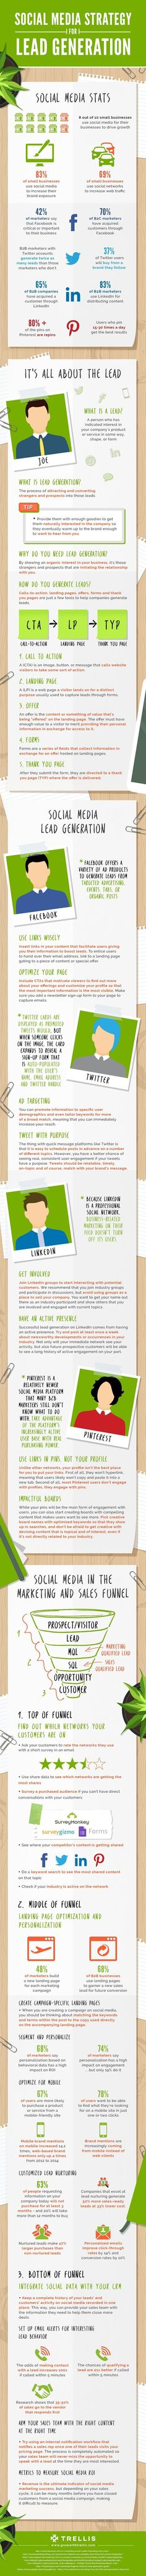 Social Media Strategy for Lead Generation [Infographic] AND Take this Free Full Lenght Video Training on HOW to Start an Online Business